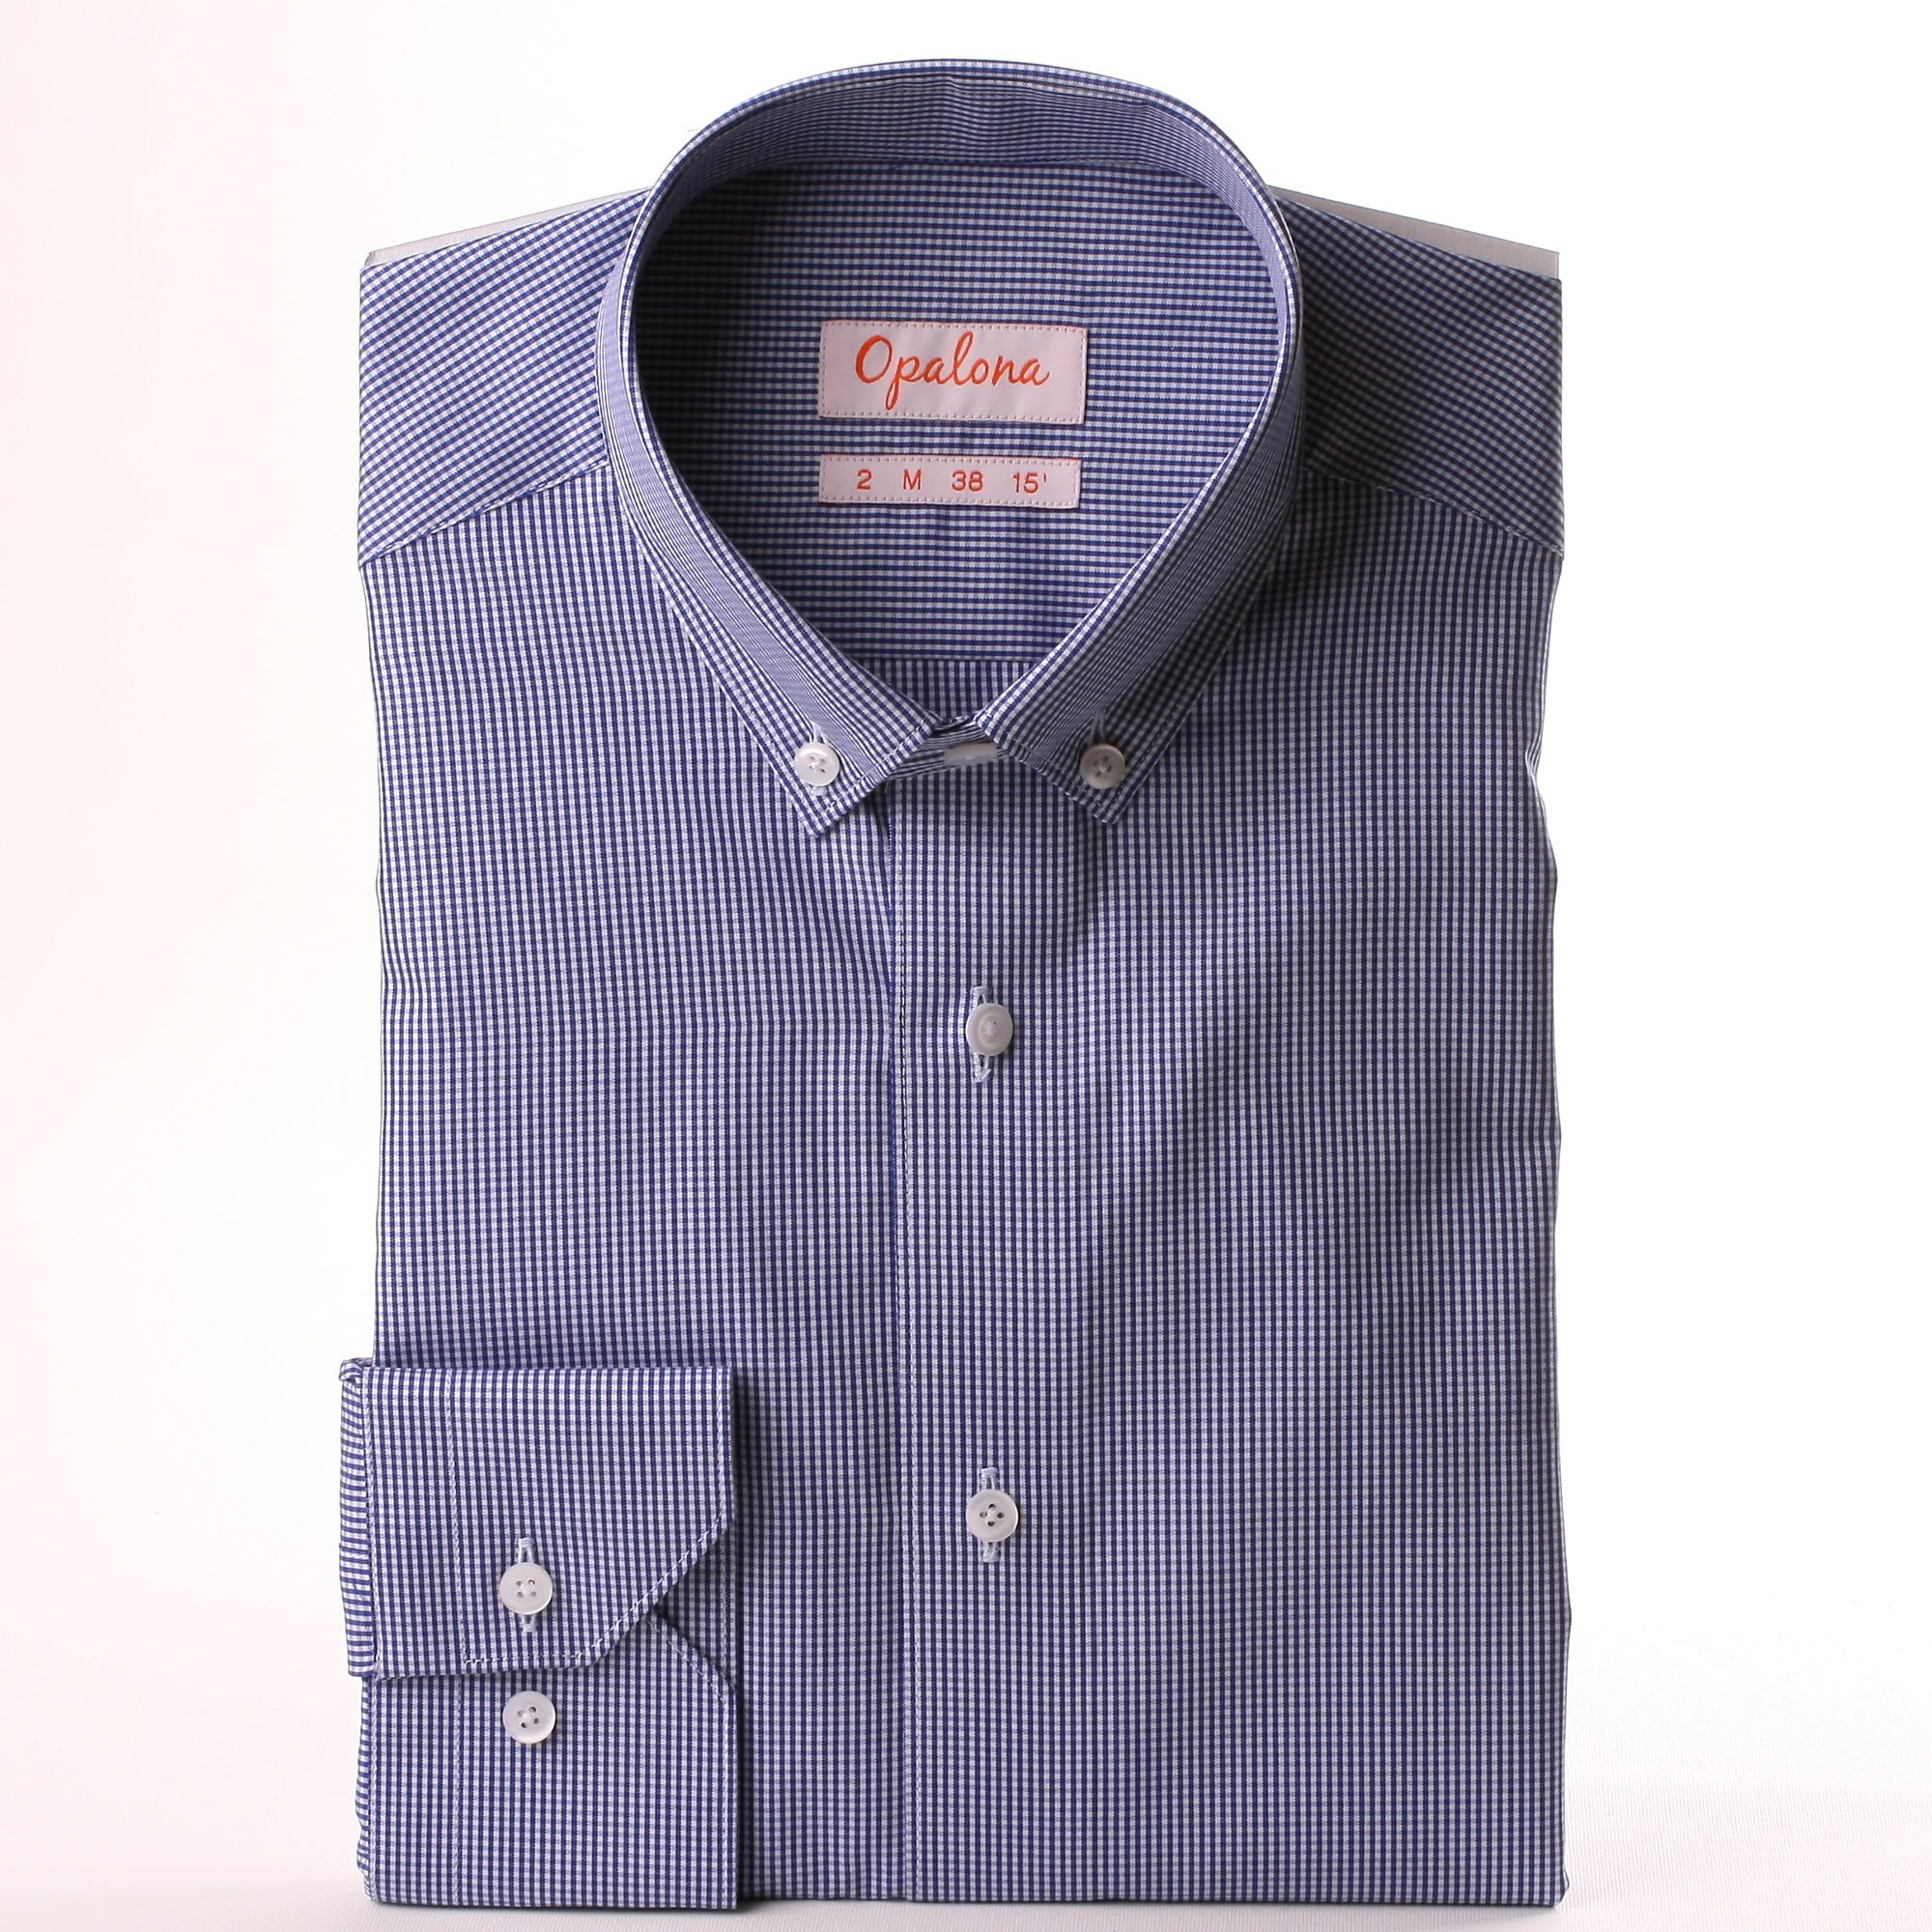 Navy blue and white gingham shirt with a button down collar for Navy blue gingham shirt